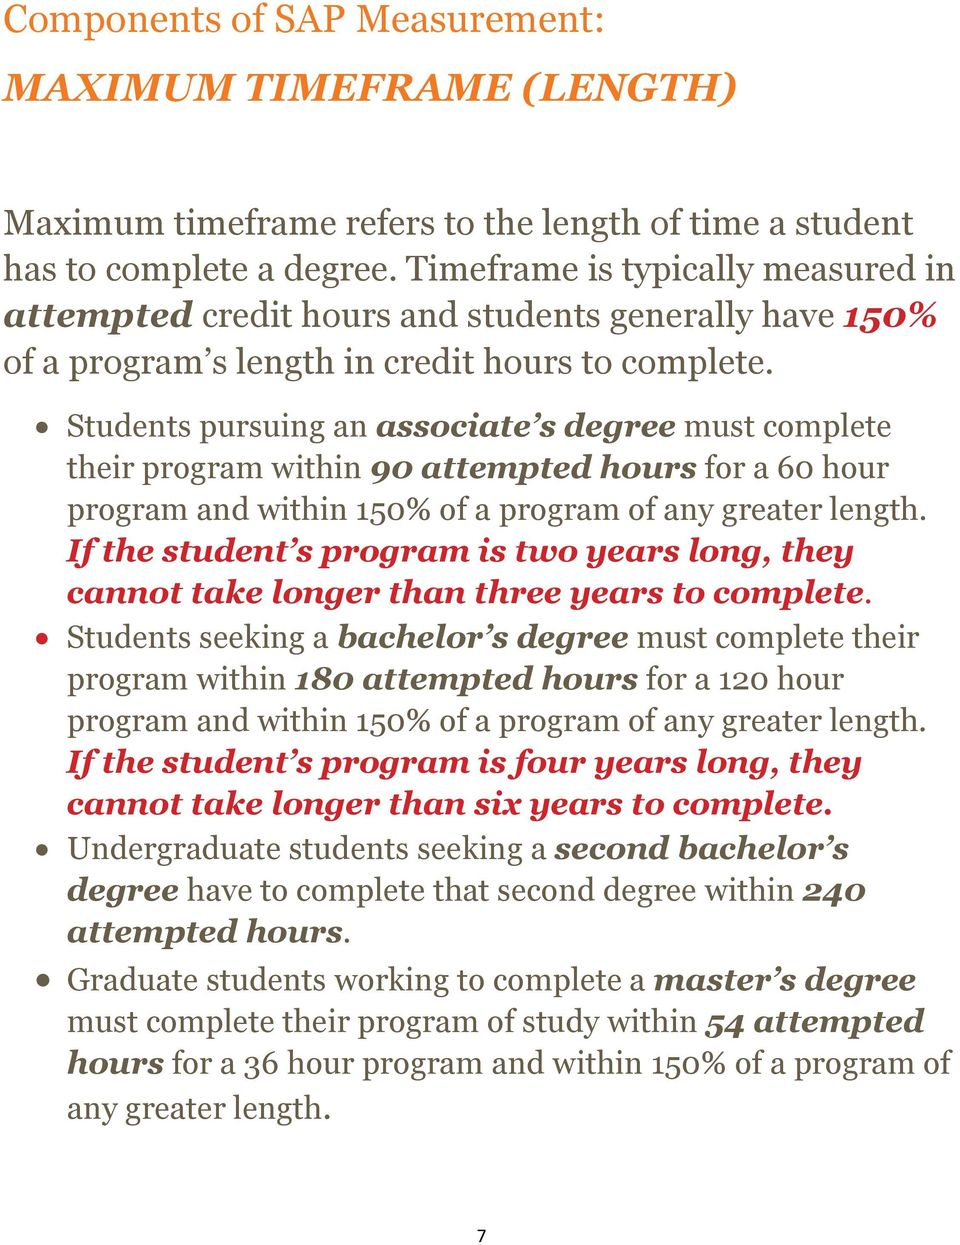 Students pursuing an associate s degree must complete their program within 90 attempted hours for a 60 hour program and within 150% of a program of any greater length.